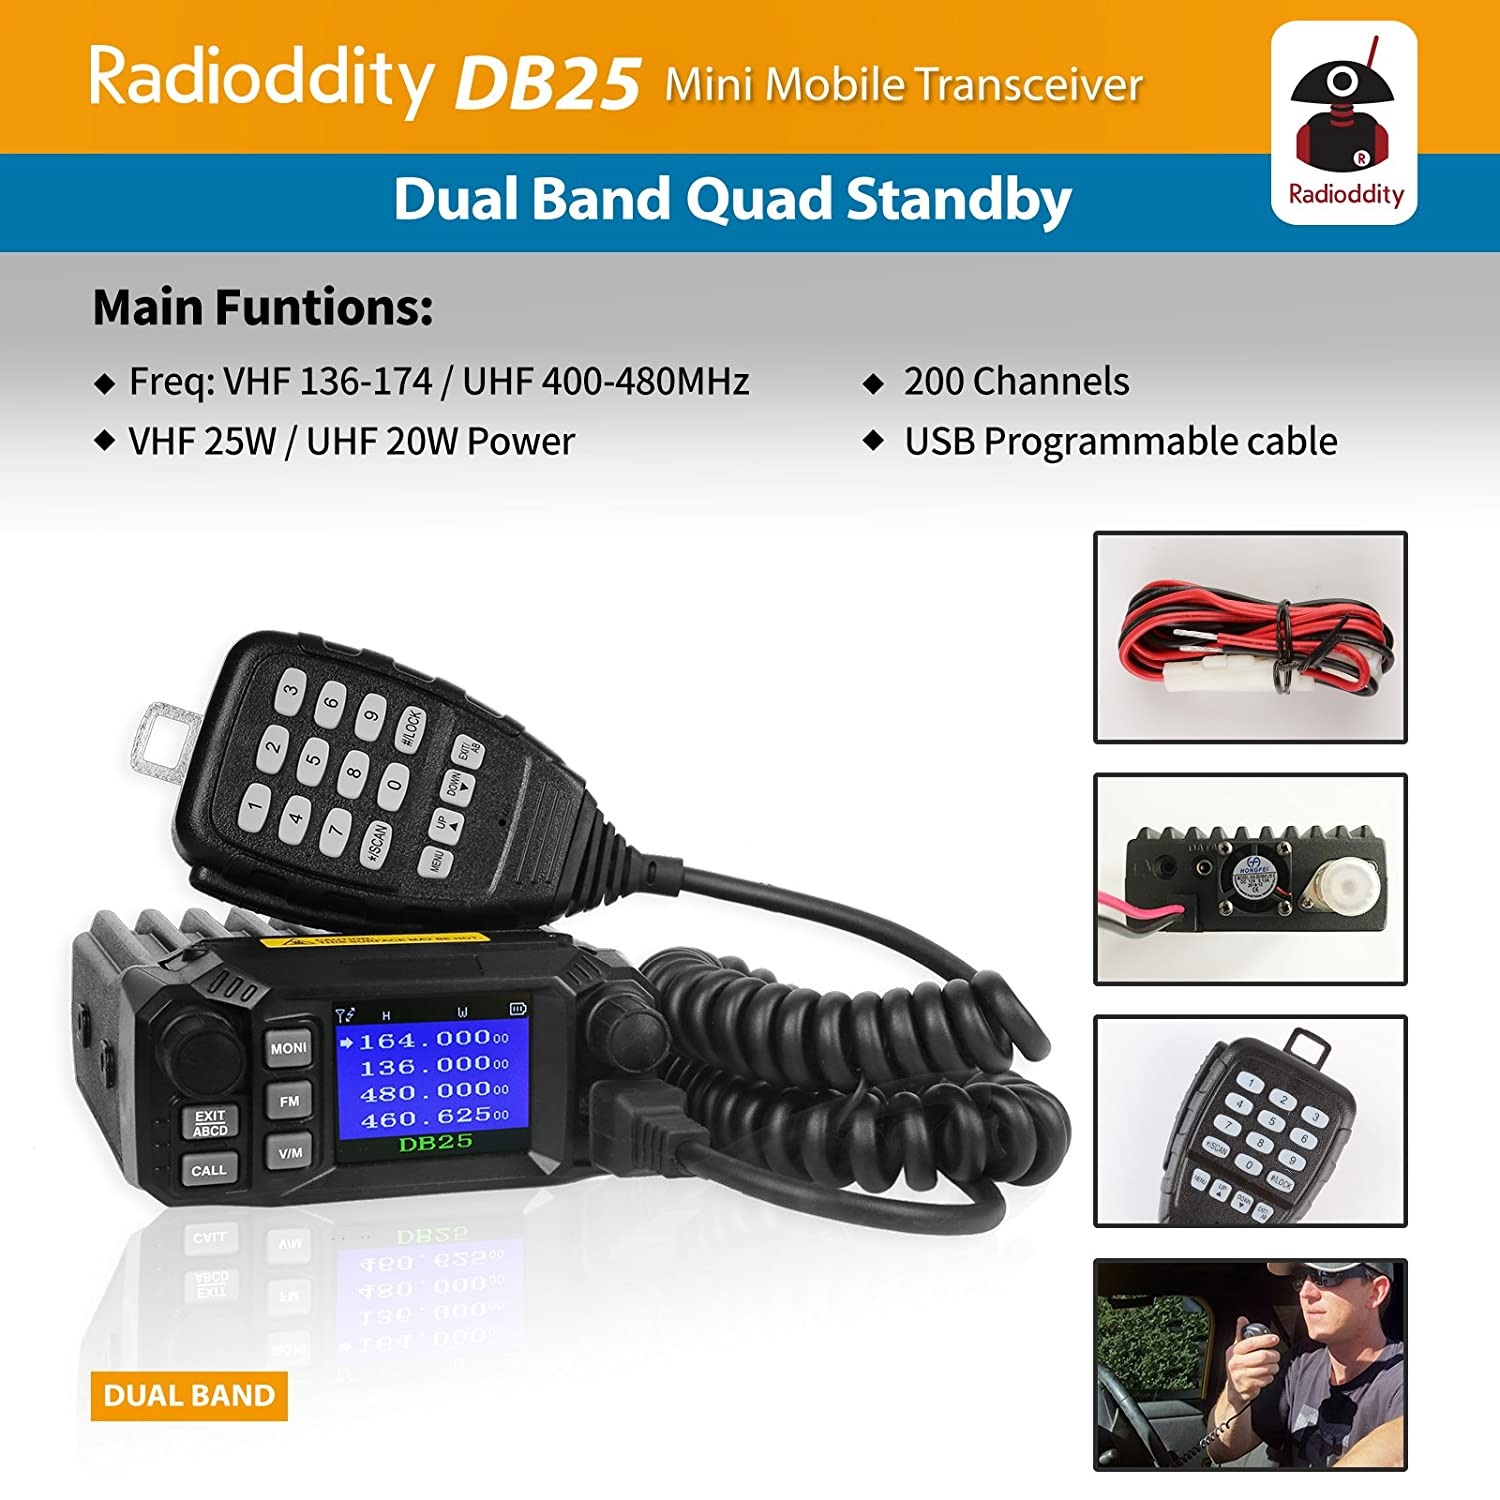 Radioddity DB25 Dual Band Quad-Standby Mini Mobile Car Truck Radio VHF UHF 25W//10W Car Transceiver with Programming Cable Support Chirp